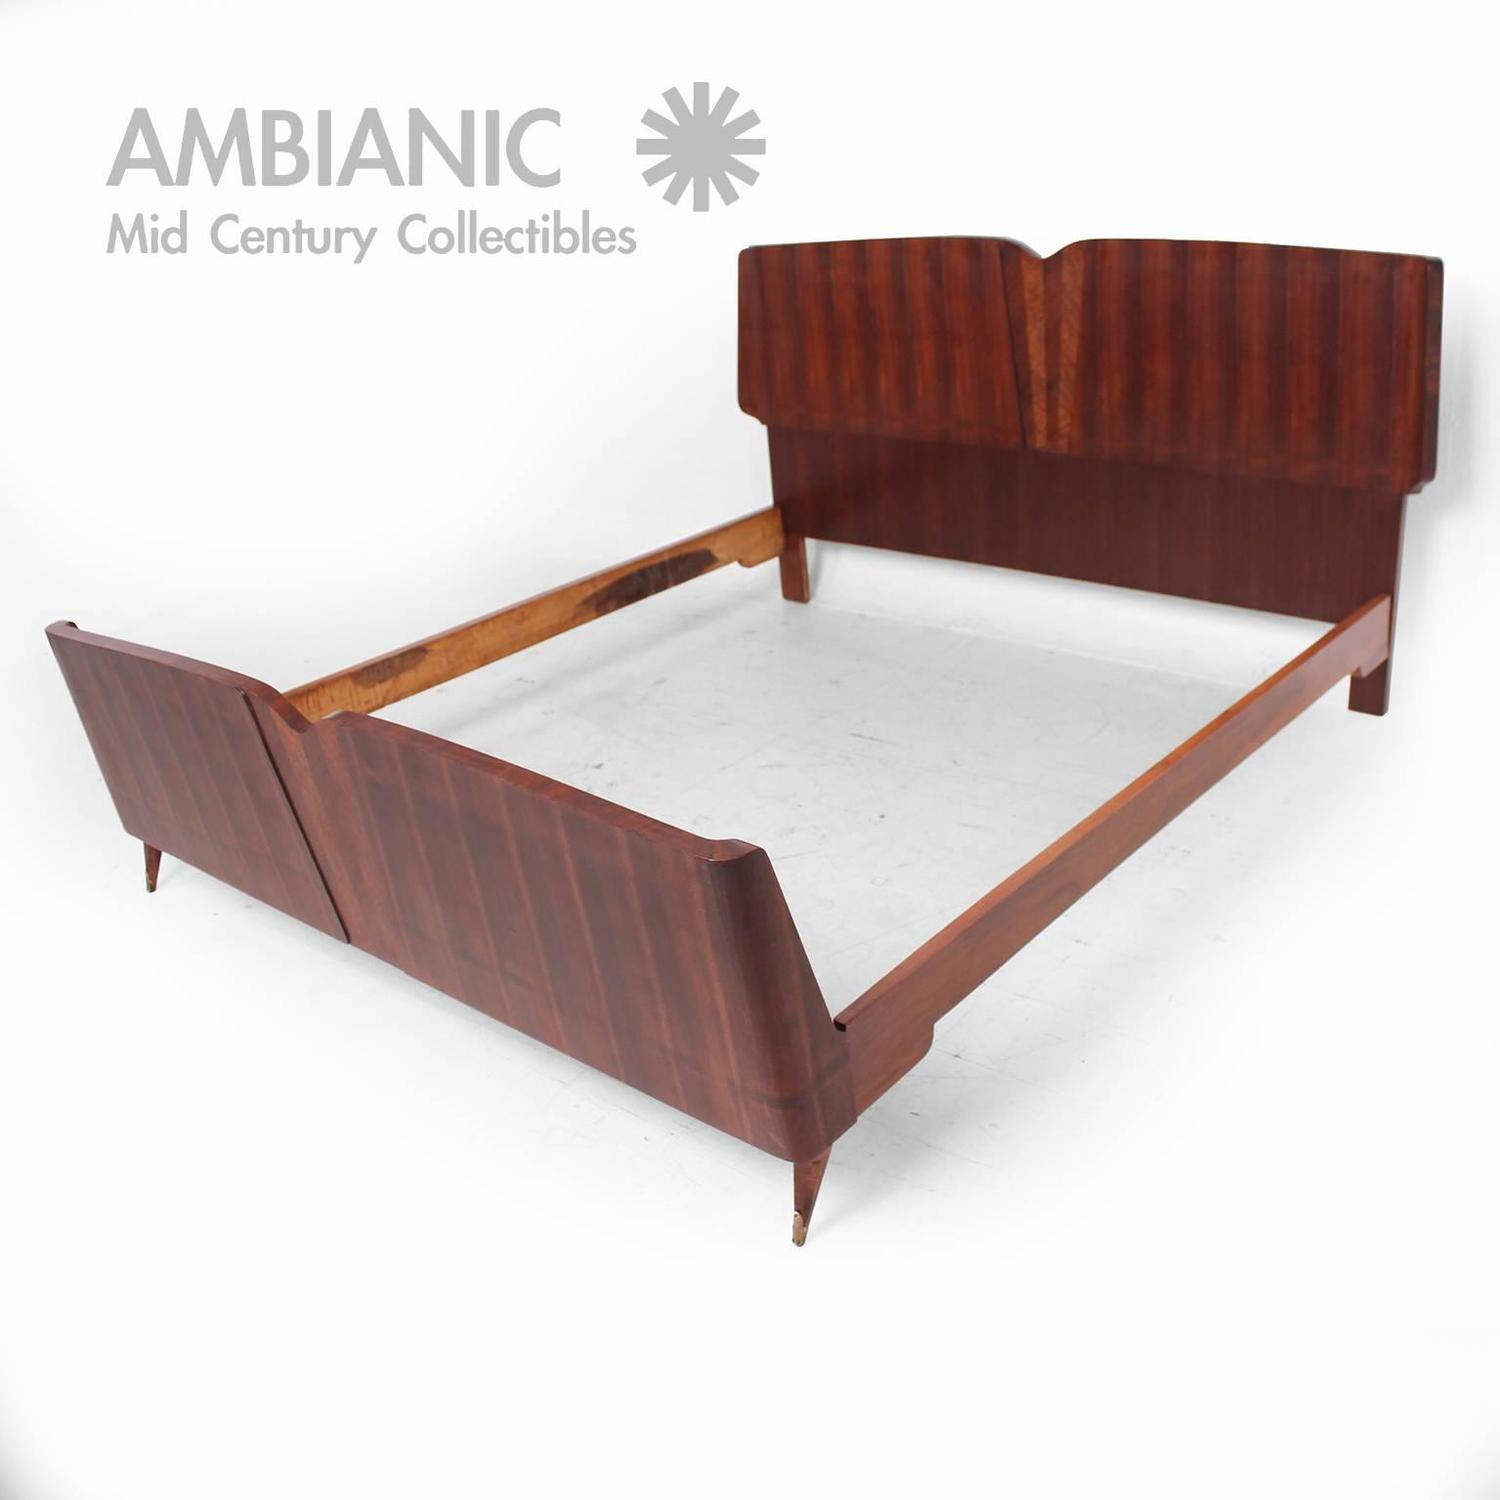 Mid century modern italian bed frame after borsani for sale at 1stdibs - How to build a modern bed frame ...